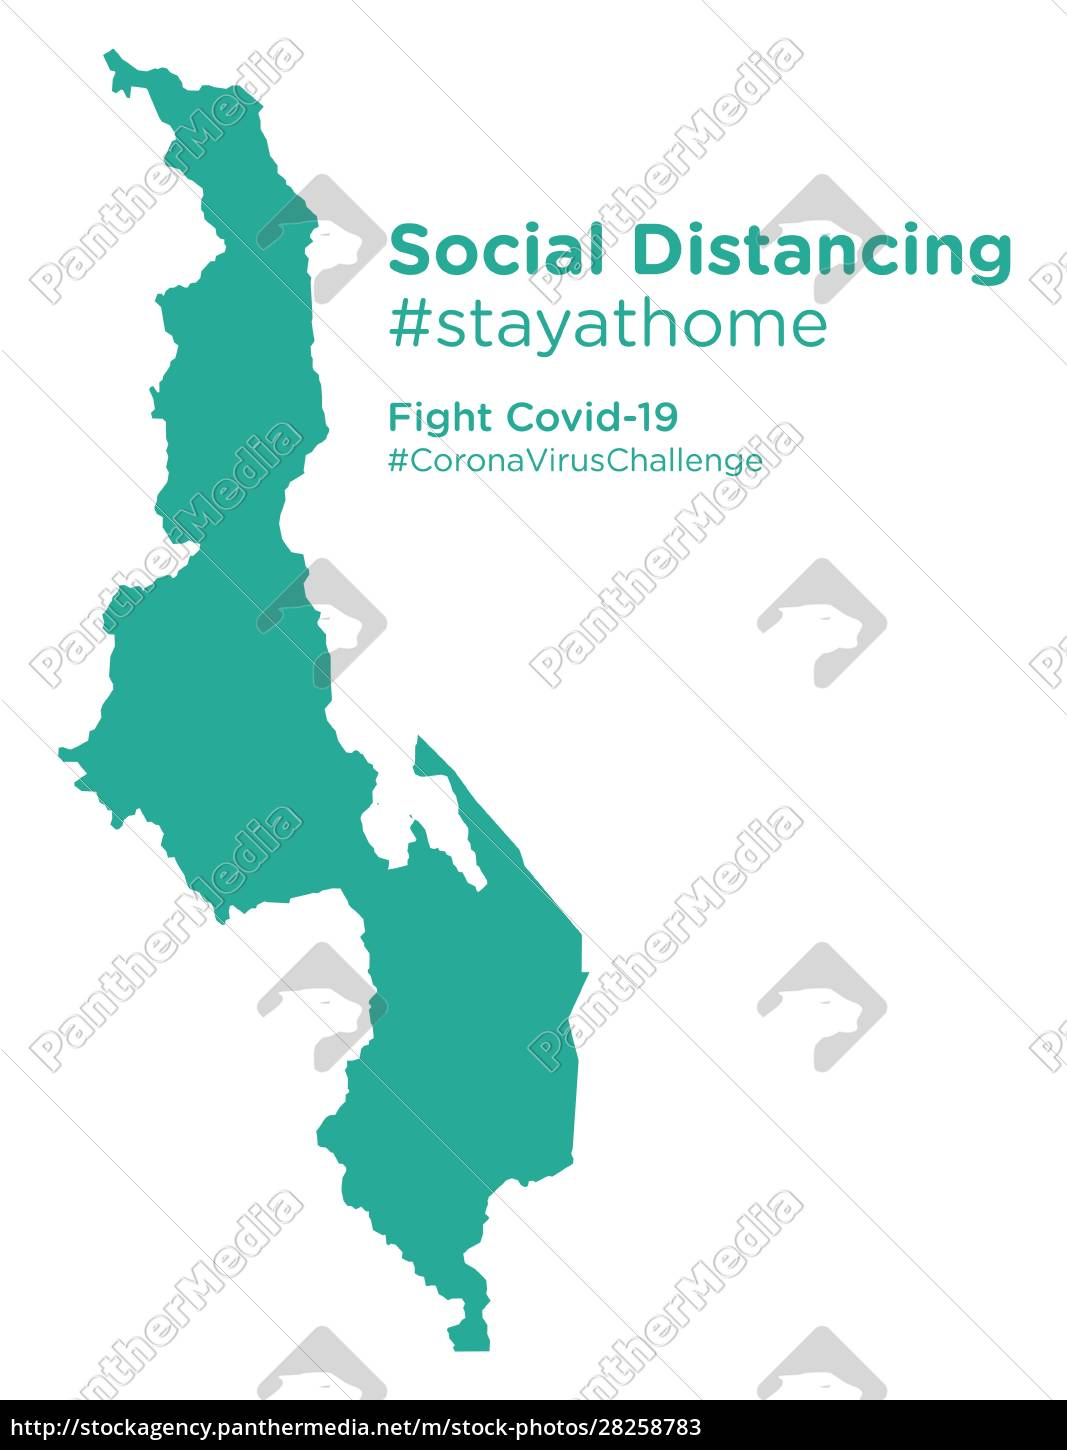 malawi, map, with, social, distancing, stayathome - 28258783